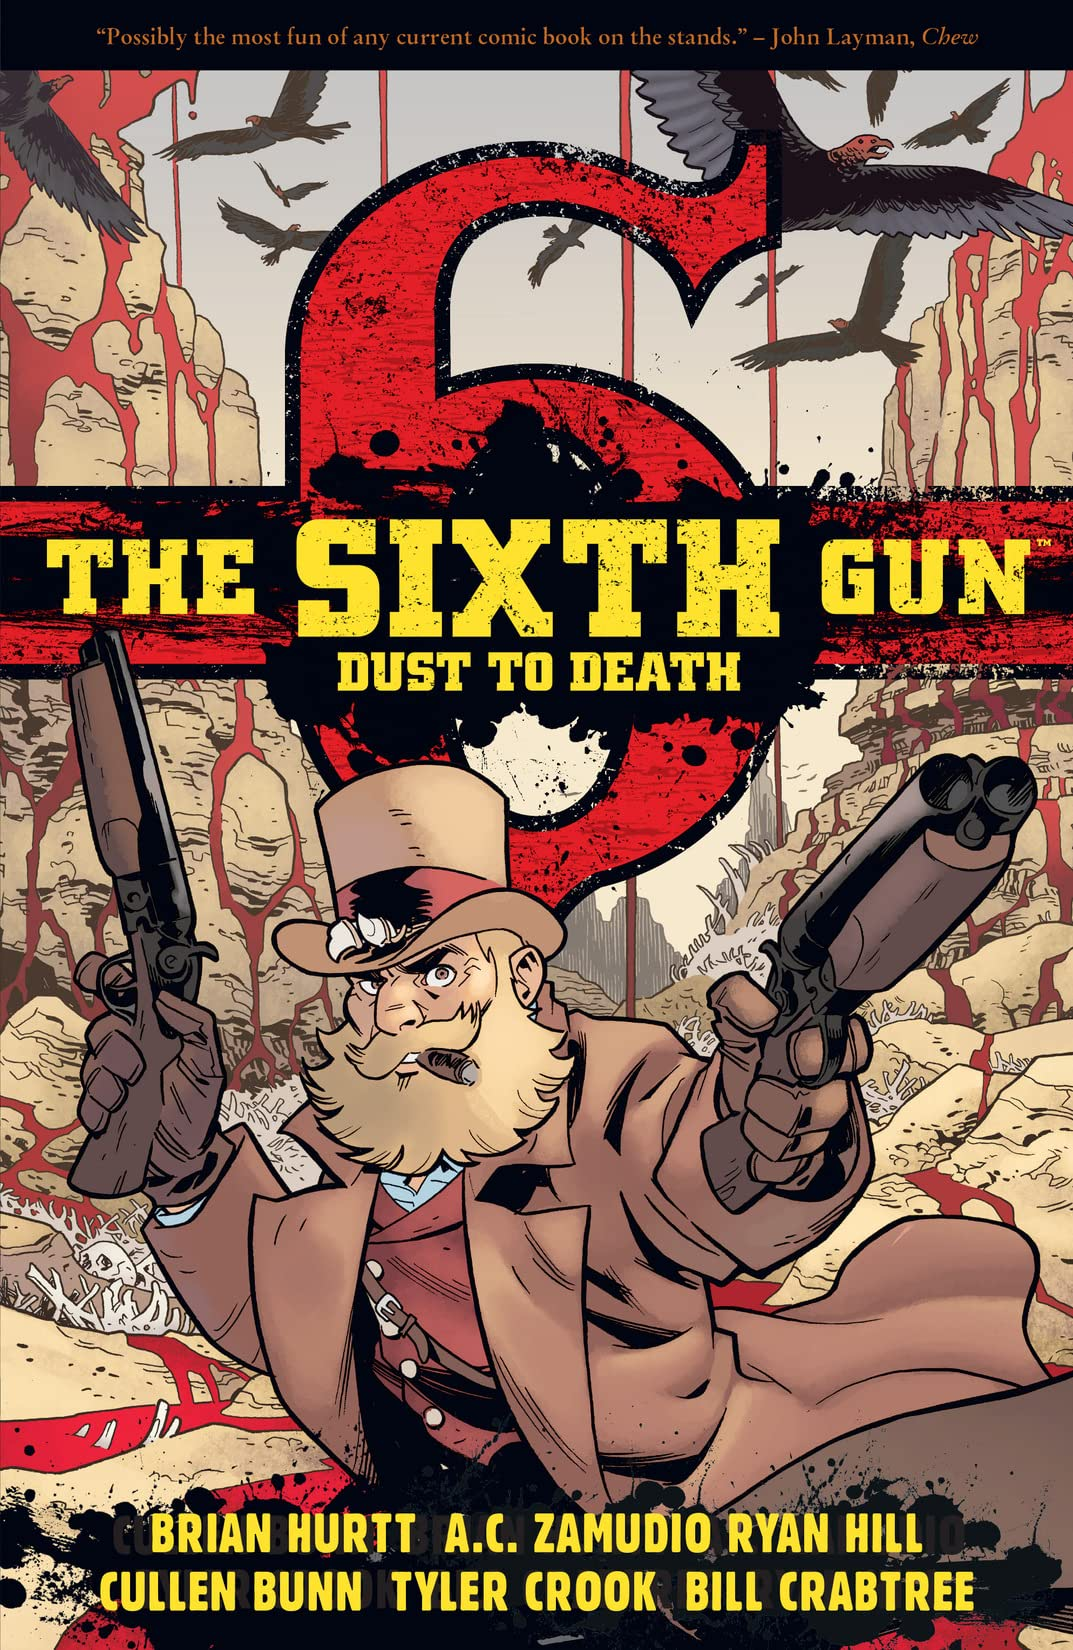 The Sixth Gun: Dust to Death